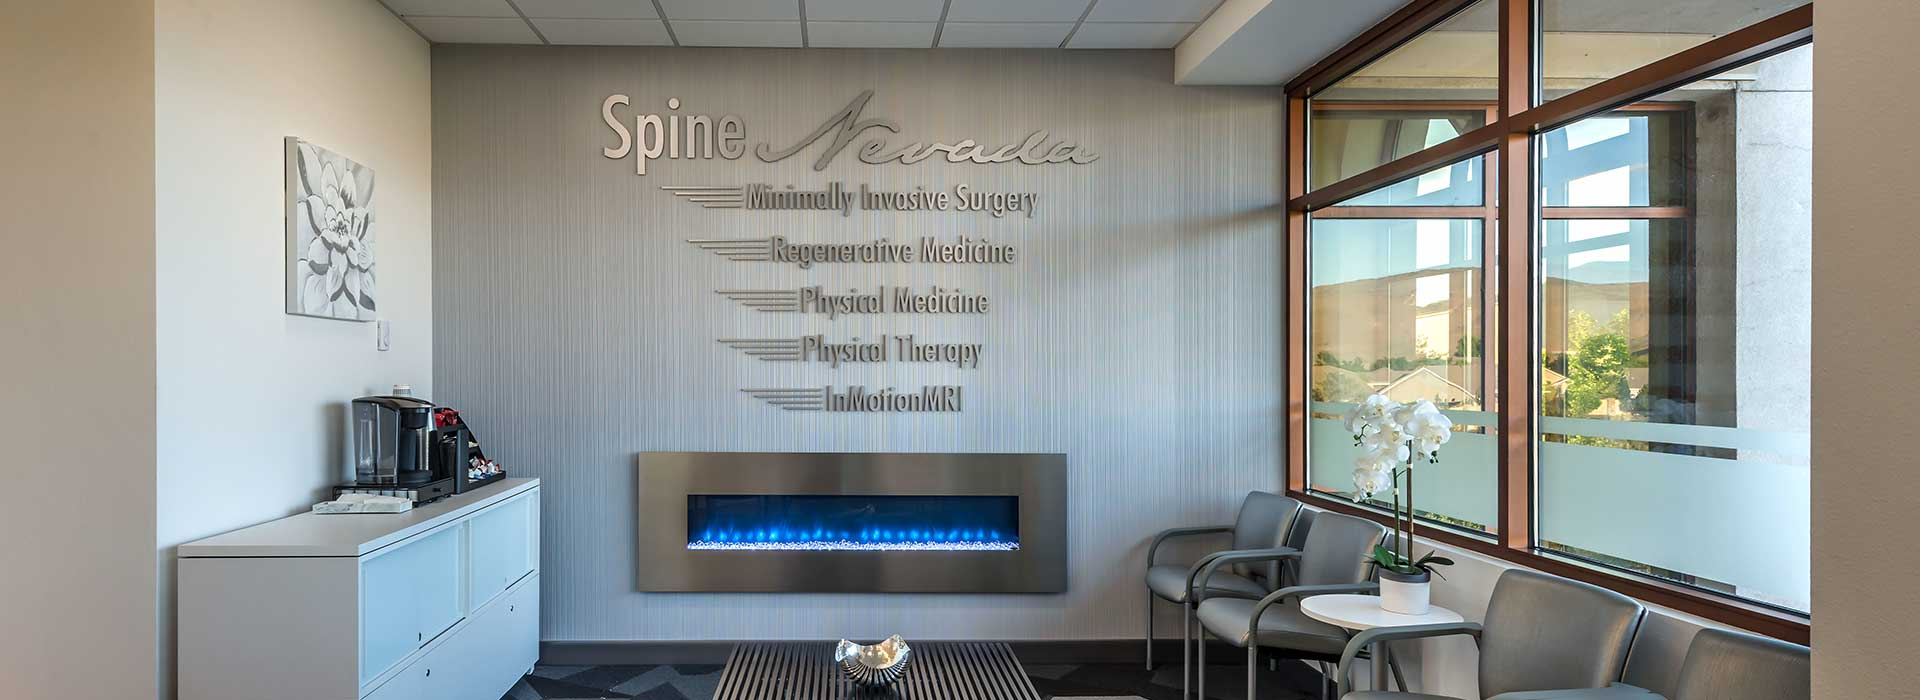 SpineNevada regenerative medicine, stem cell therapy, reno, carson city, sparks, nevada